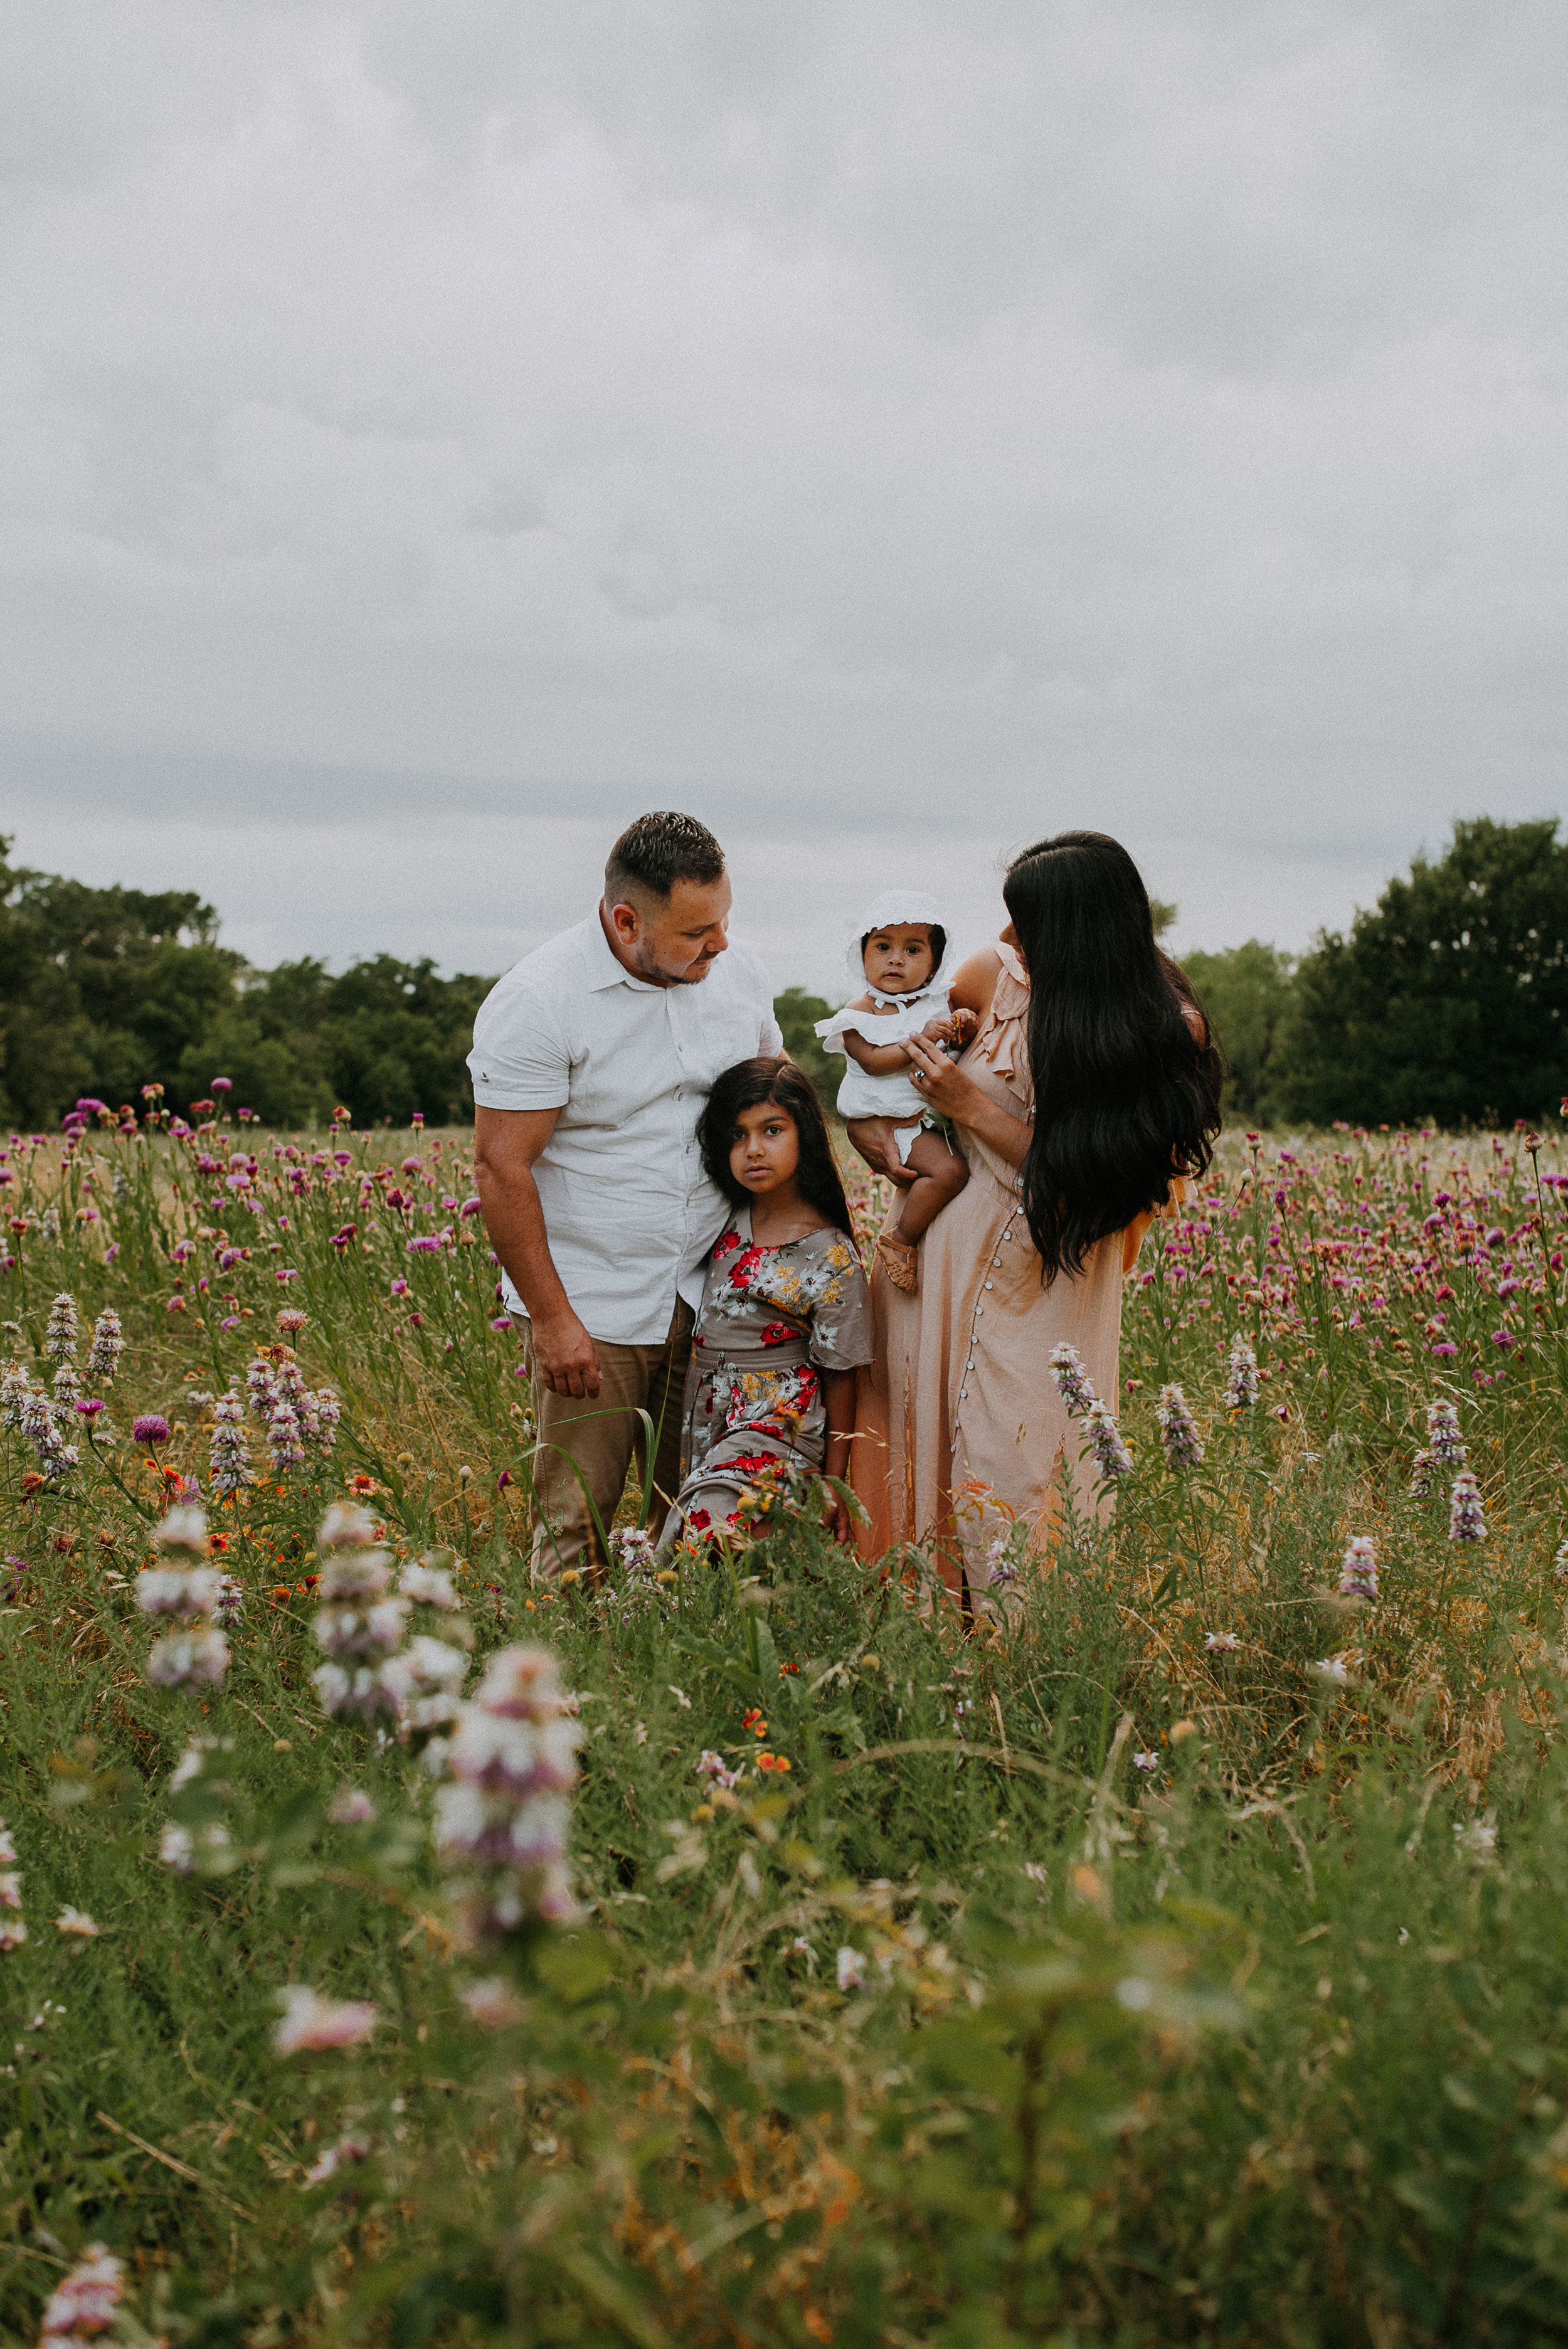 essi-marie-photography-dallas-fort-worth-texas-family-photographer-arbor-hills-nature-preserve-39